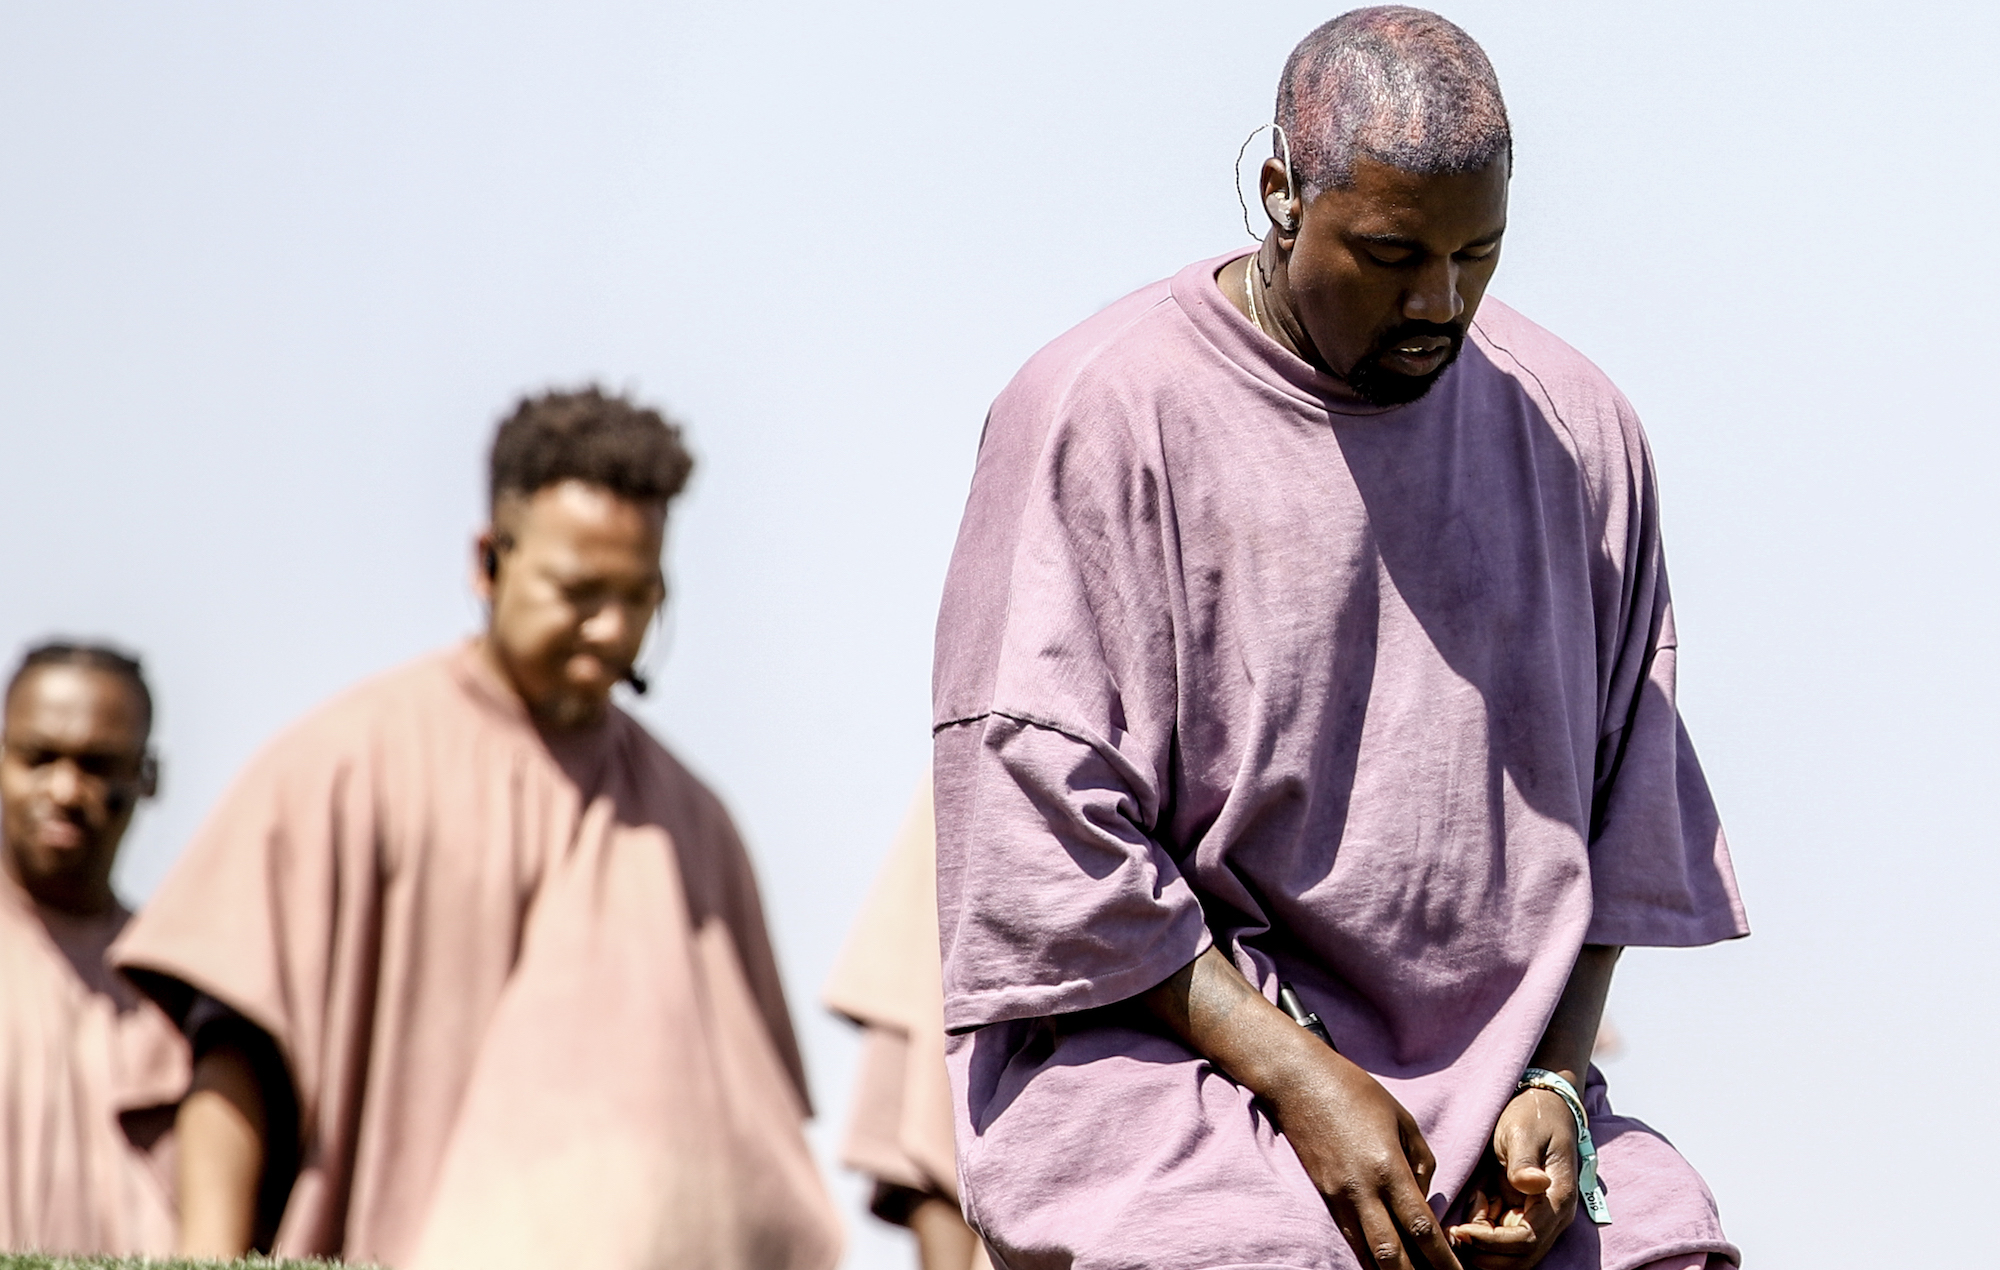 Kanye West and Dr. Dre Join Forces for 'Jesus Is King Part II' Project: 'Coming Soon'